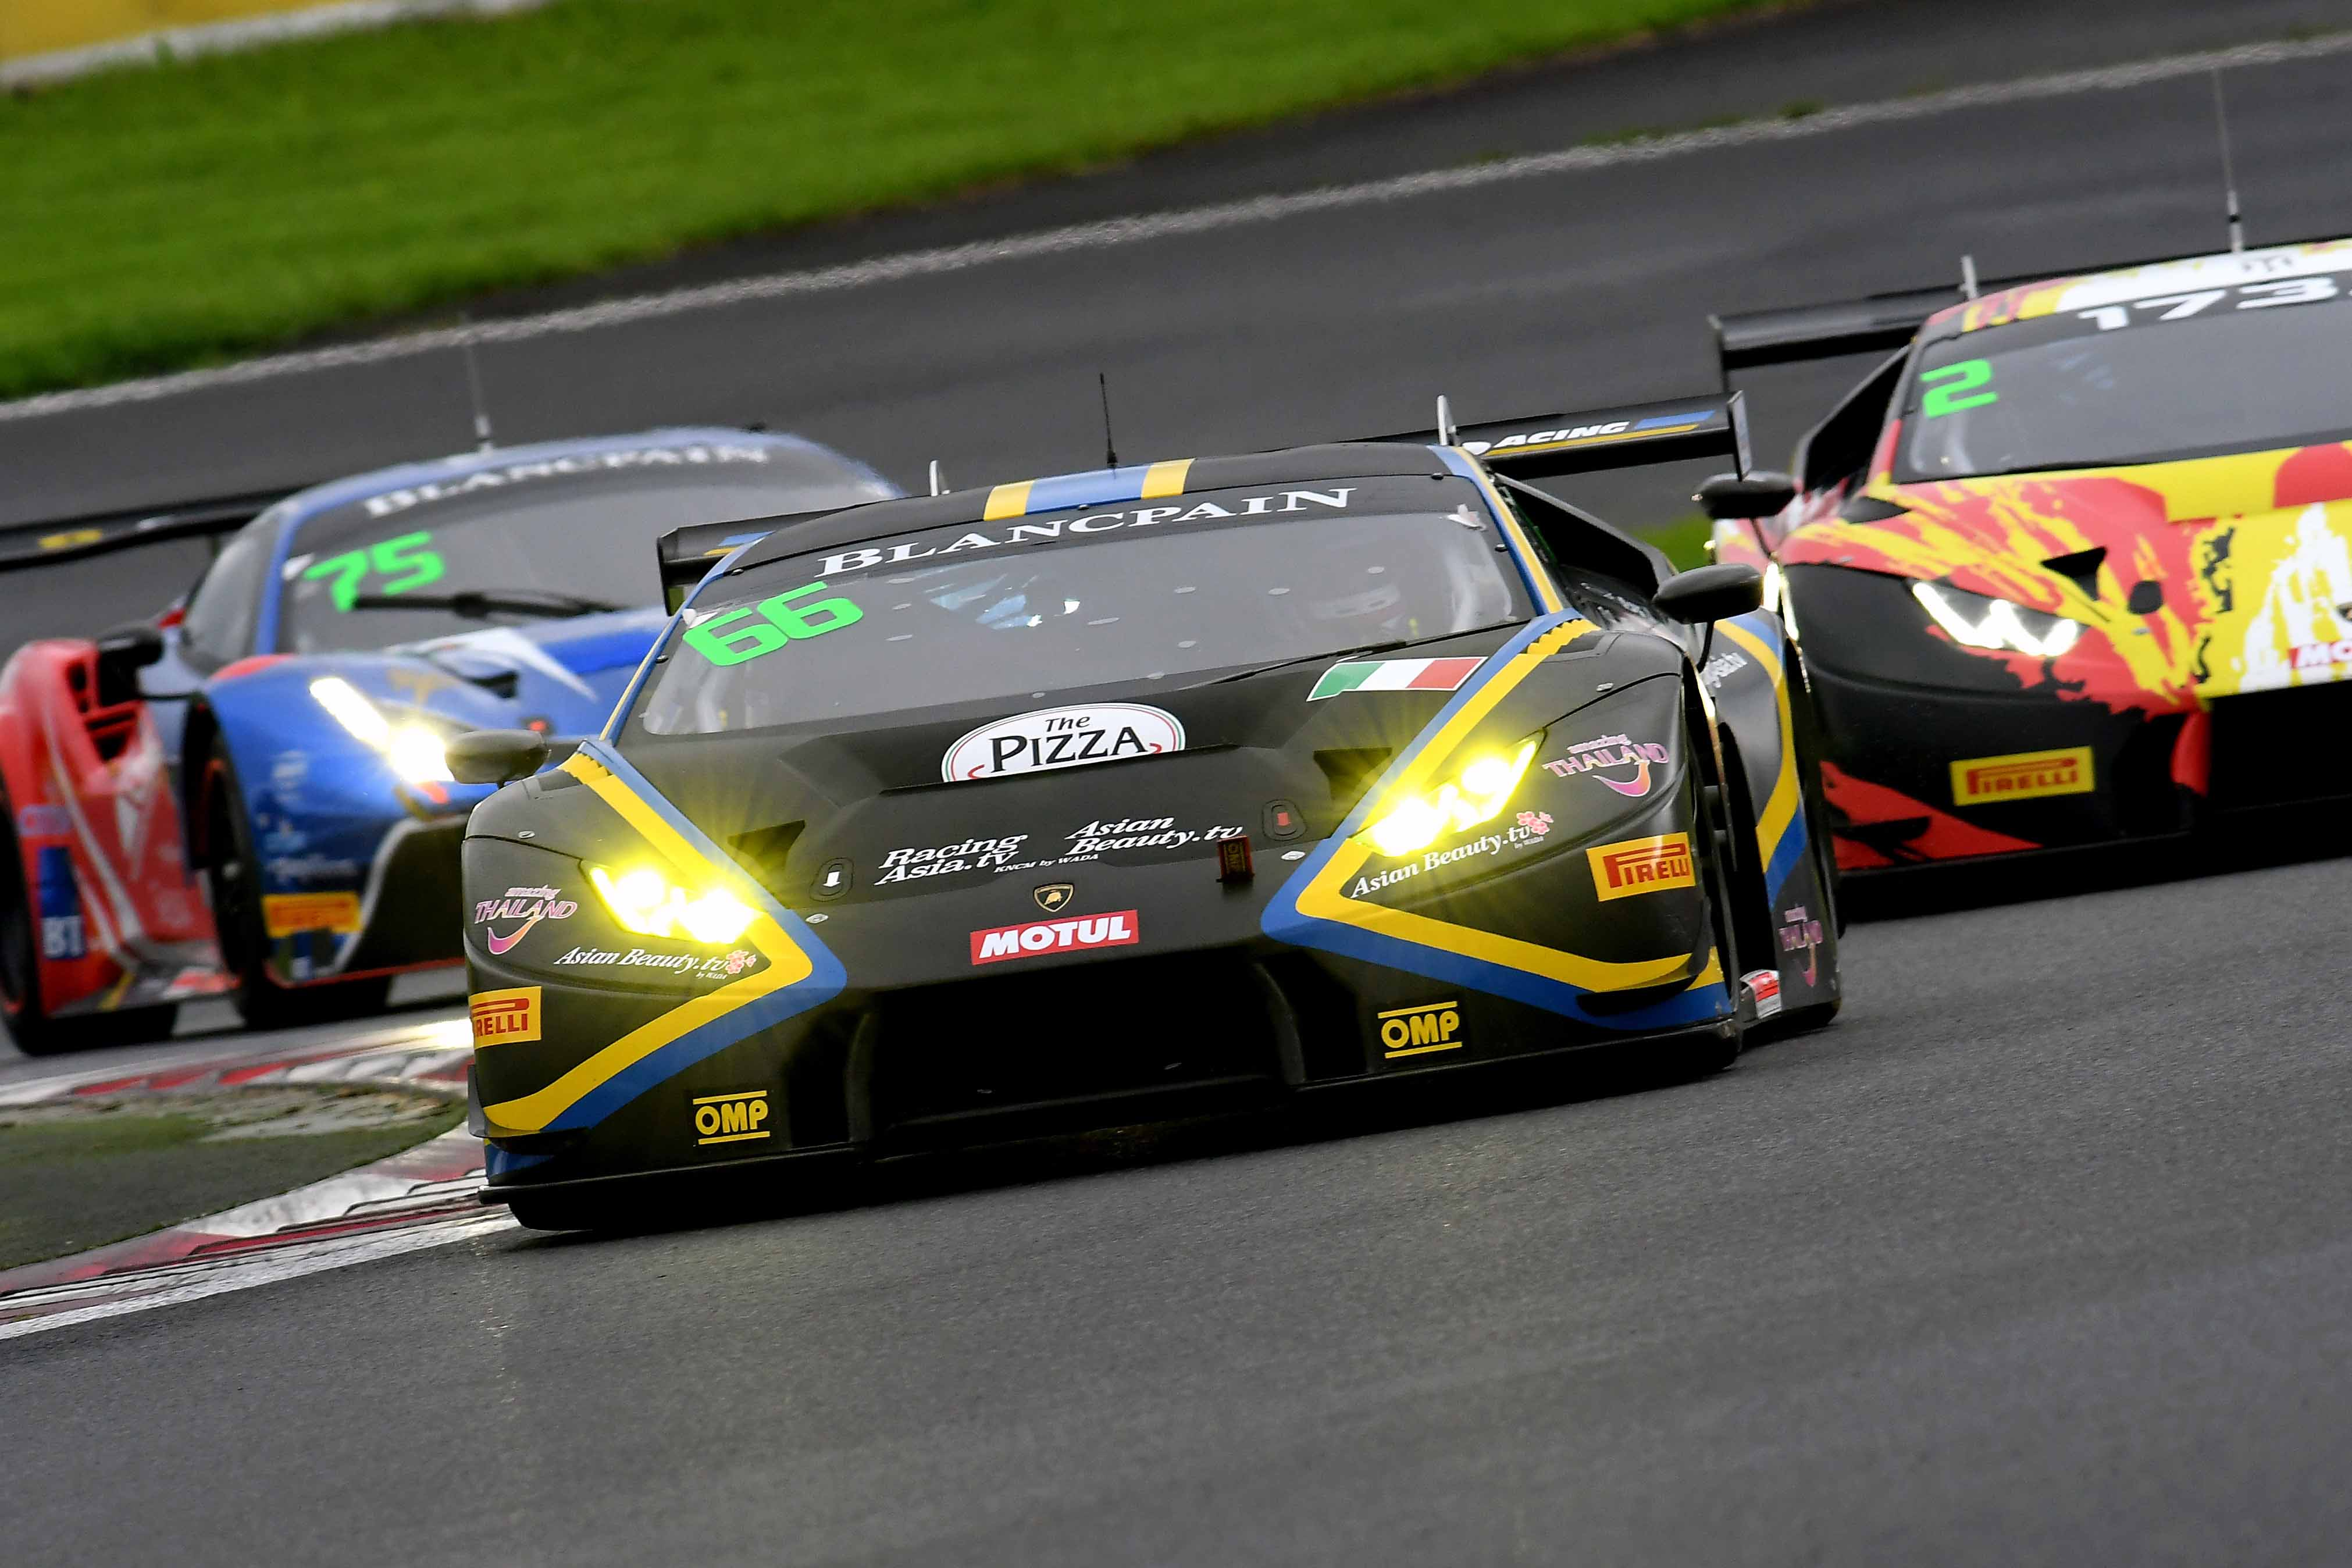 SILVER CUP PODIUM FOR KODRIC AND STUVIK AT FUJI